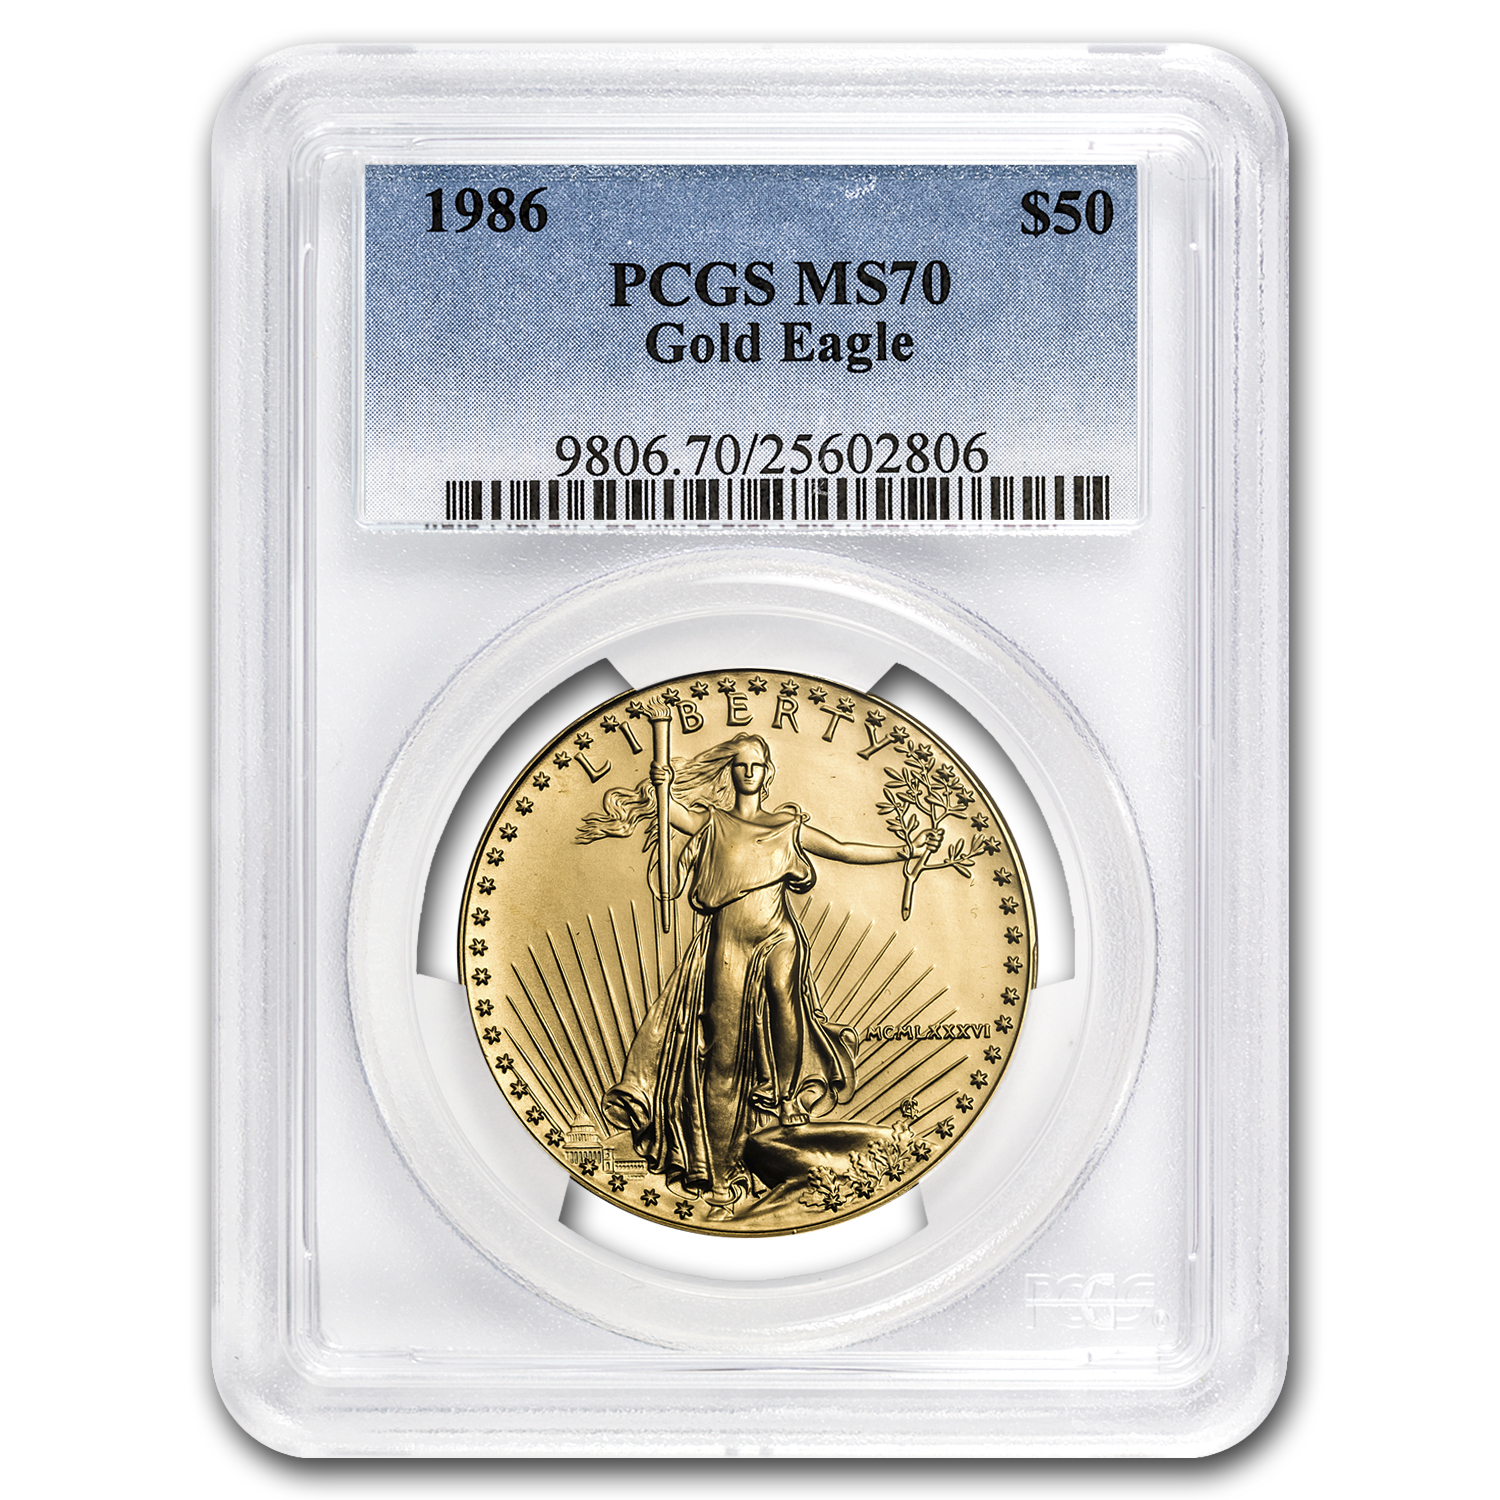 1986 1 oz Gold American Eagle MS-70 PCGS